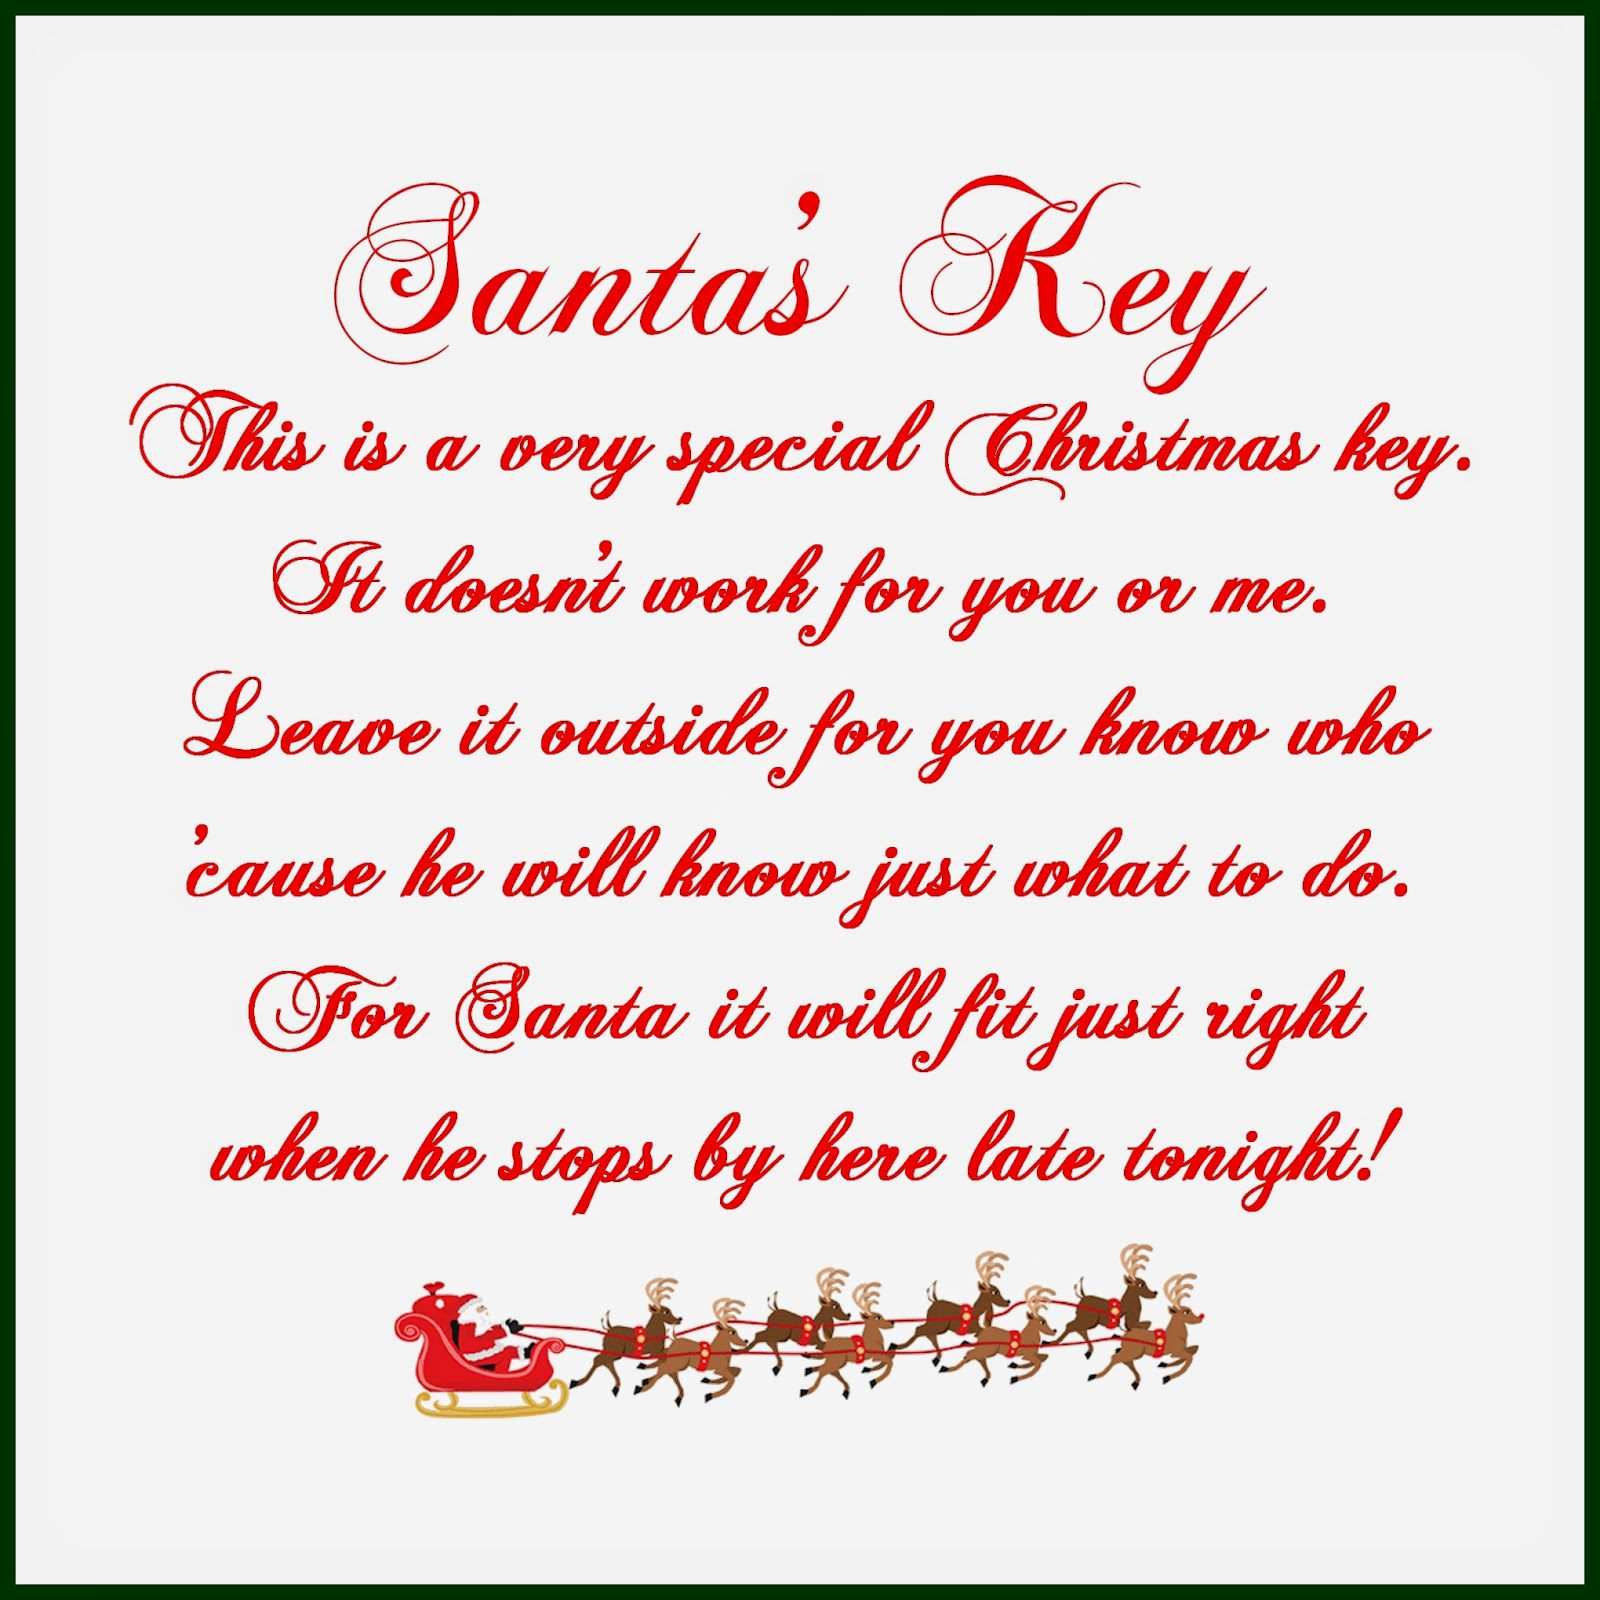 If you'd like to download the card, you can find it here: Santa's Key